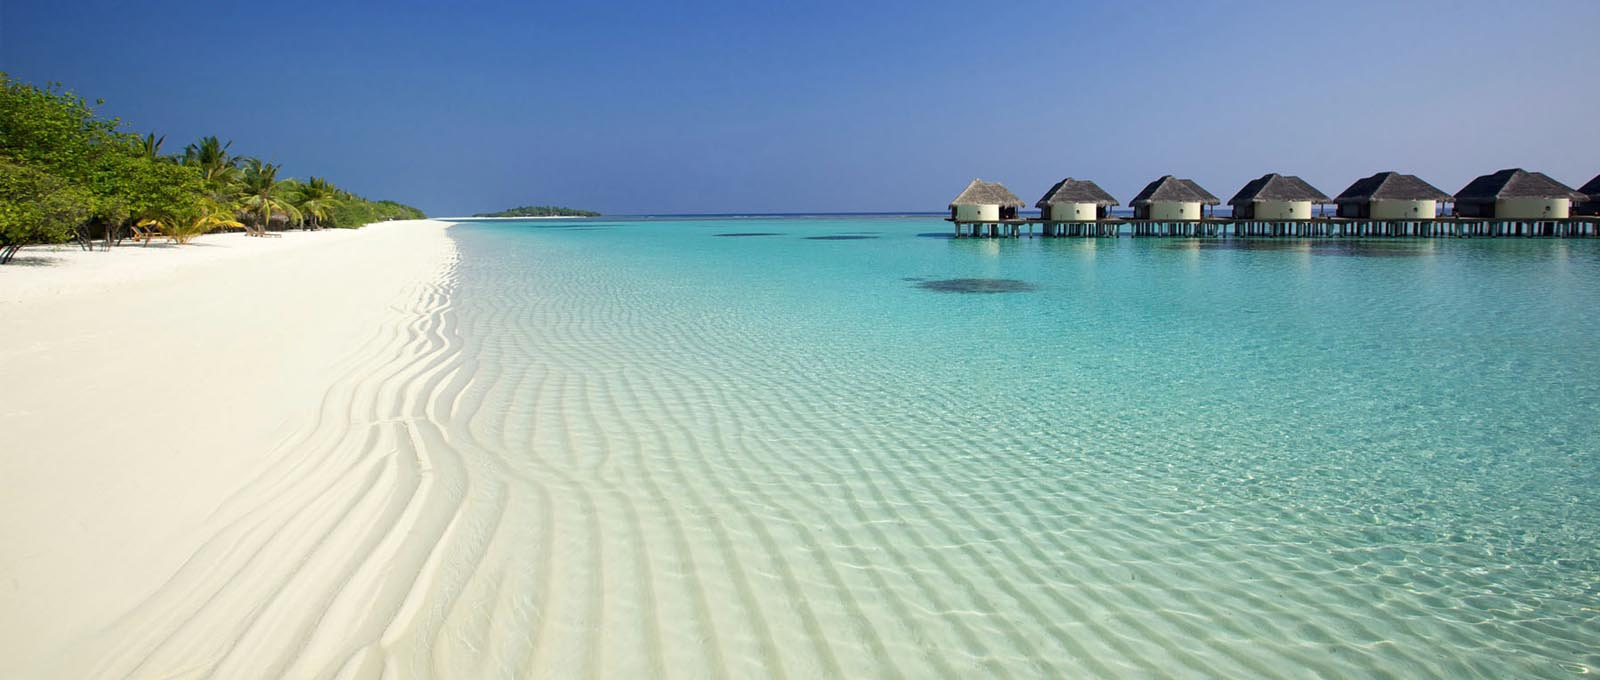 A perfect holiday destination!